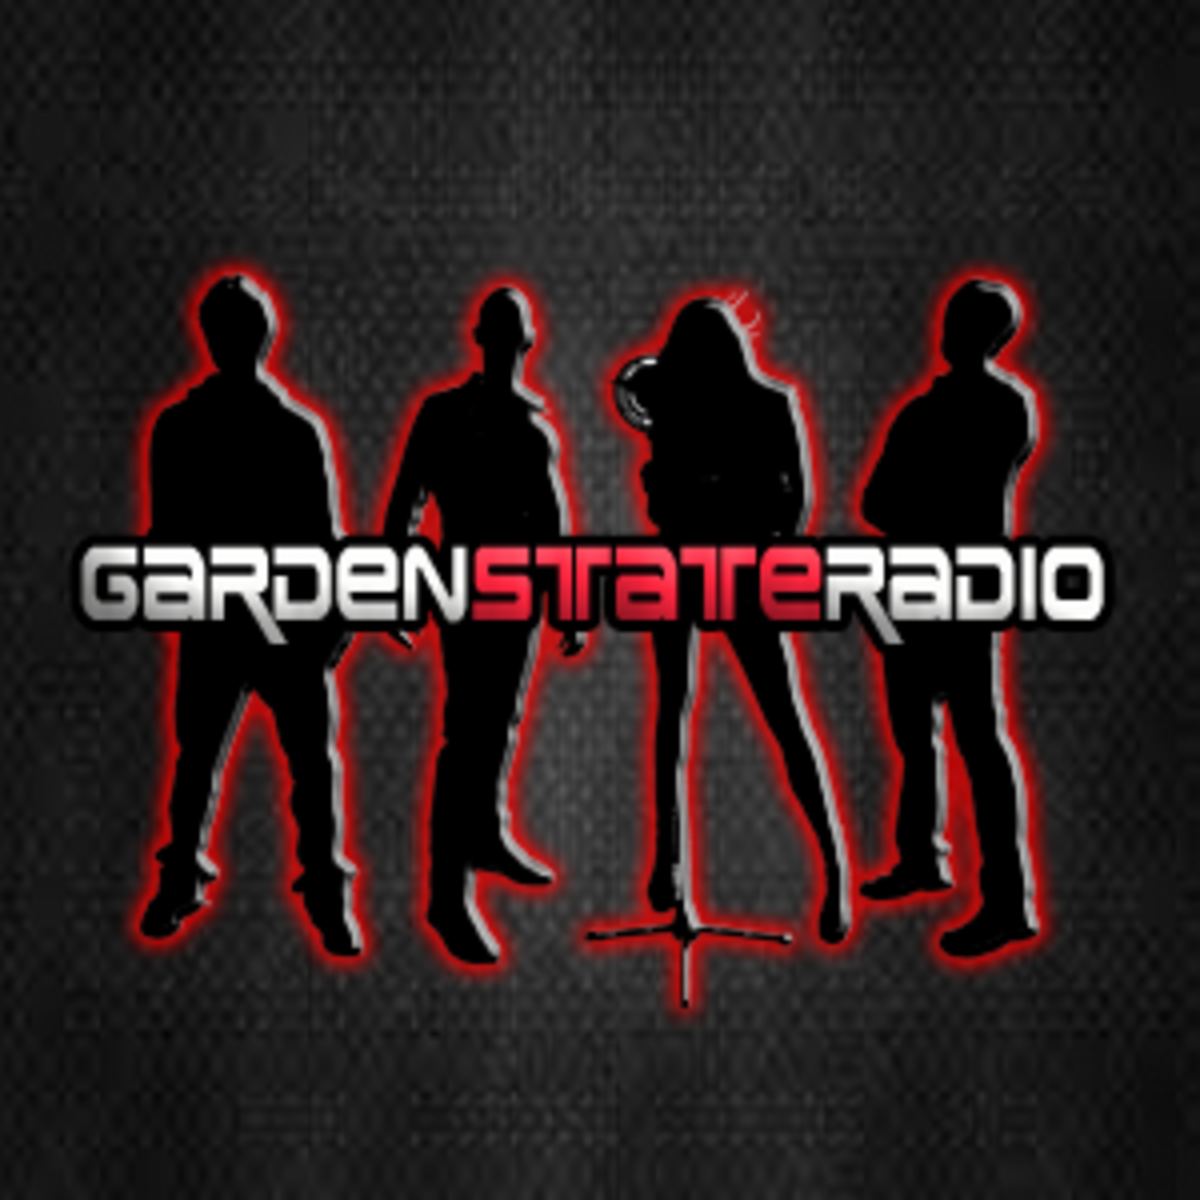 garden-state-radio-cover-band-central-spotlight-of-the-week-for-022514